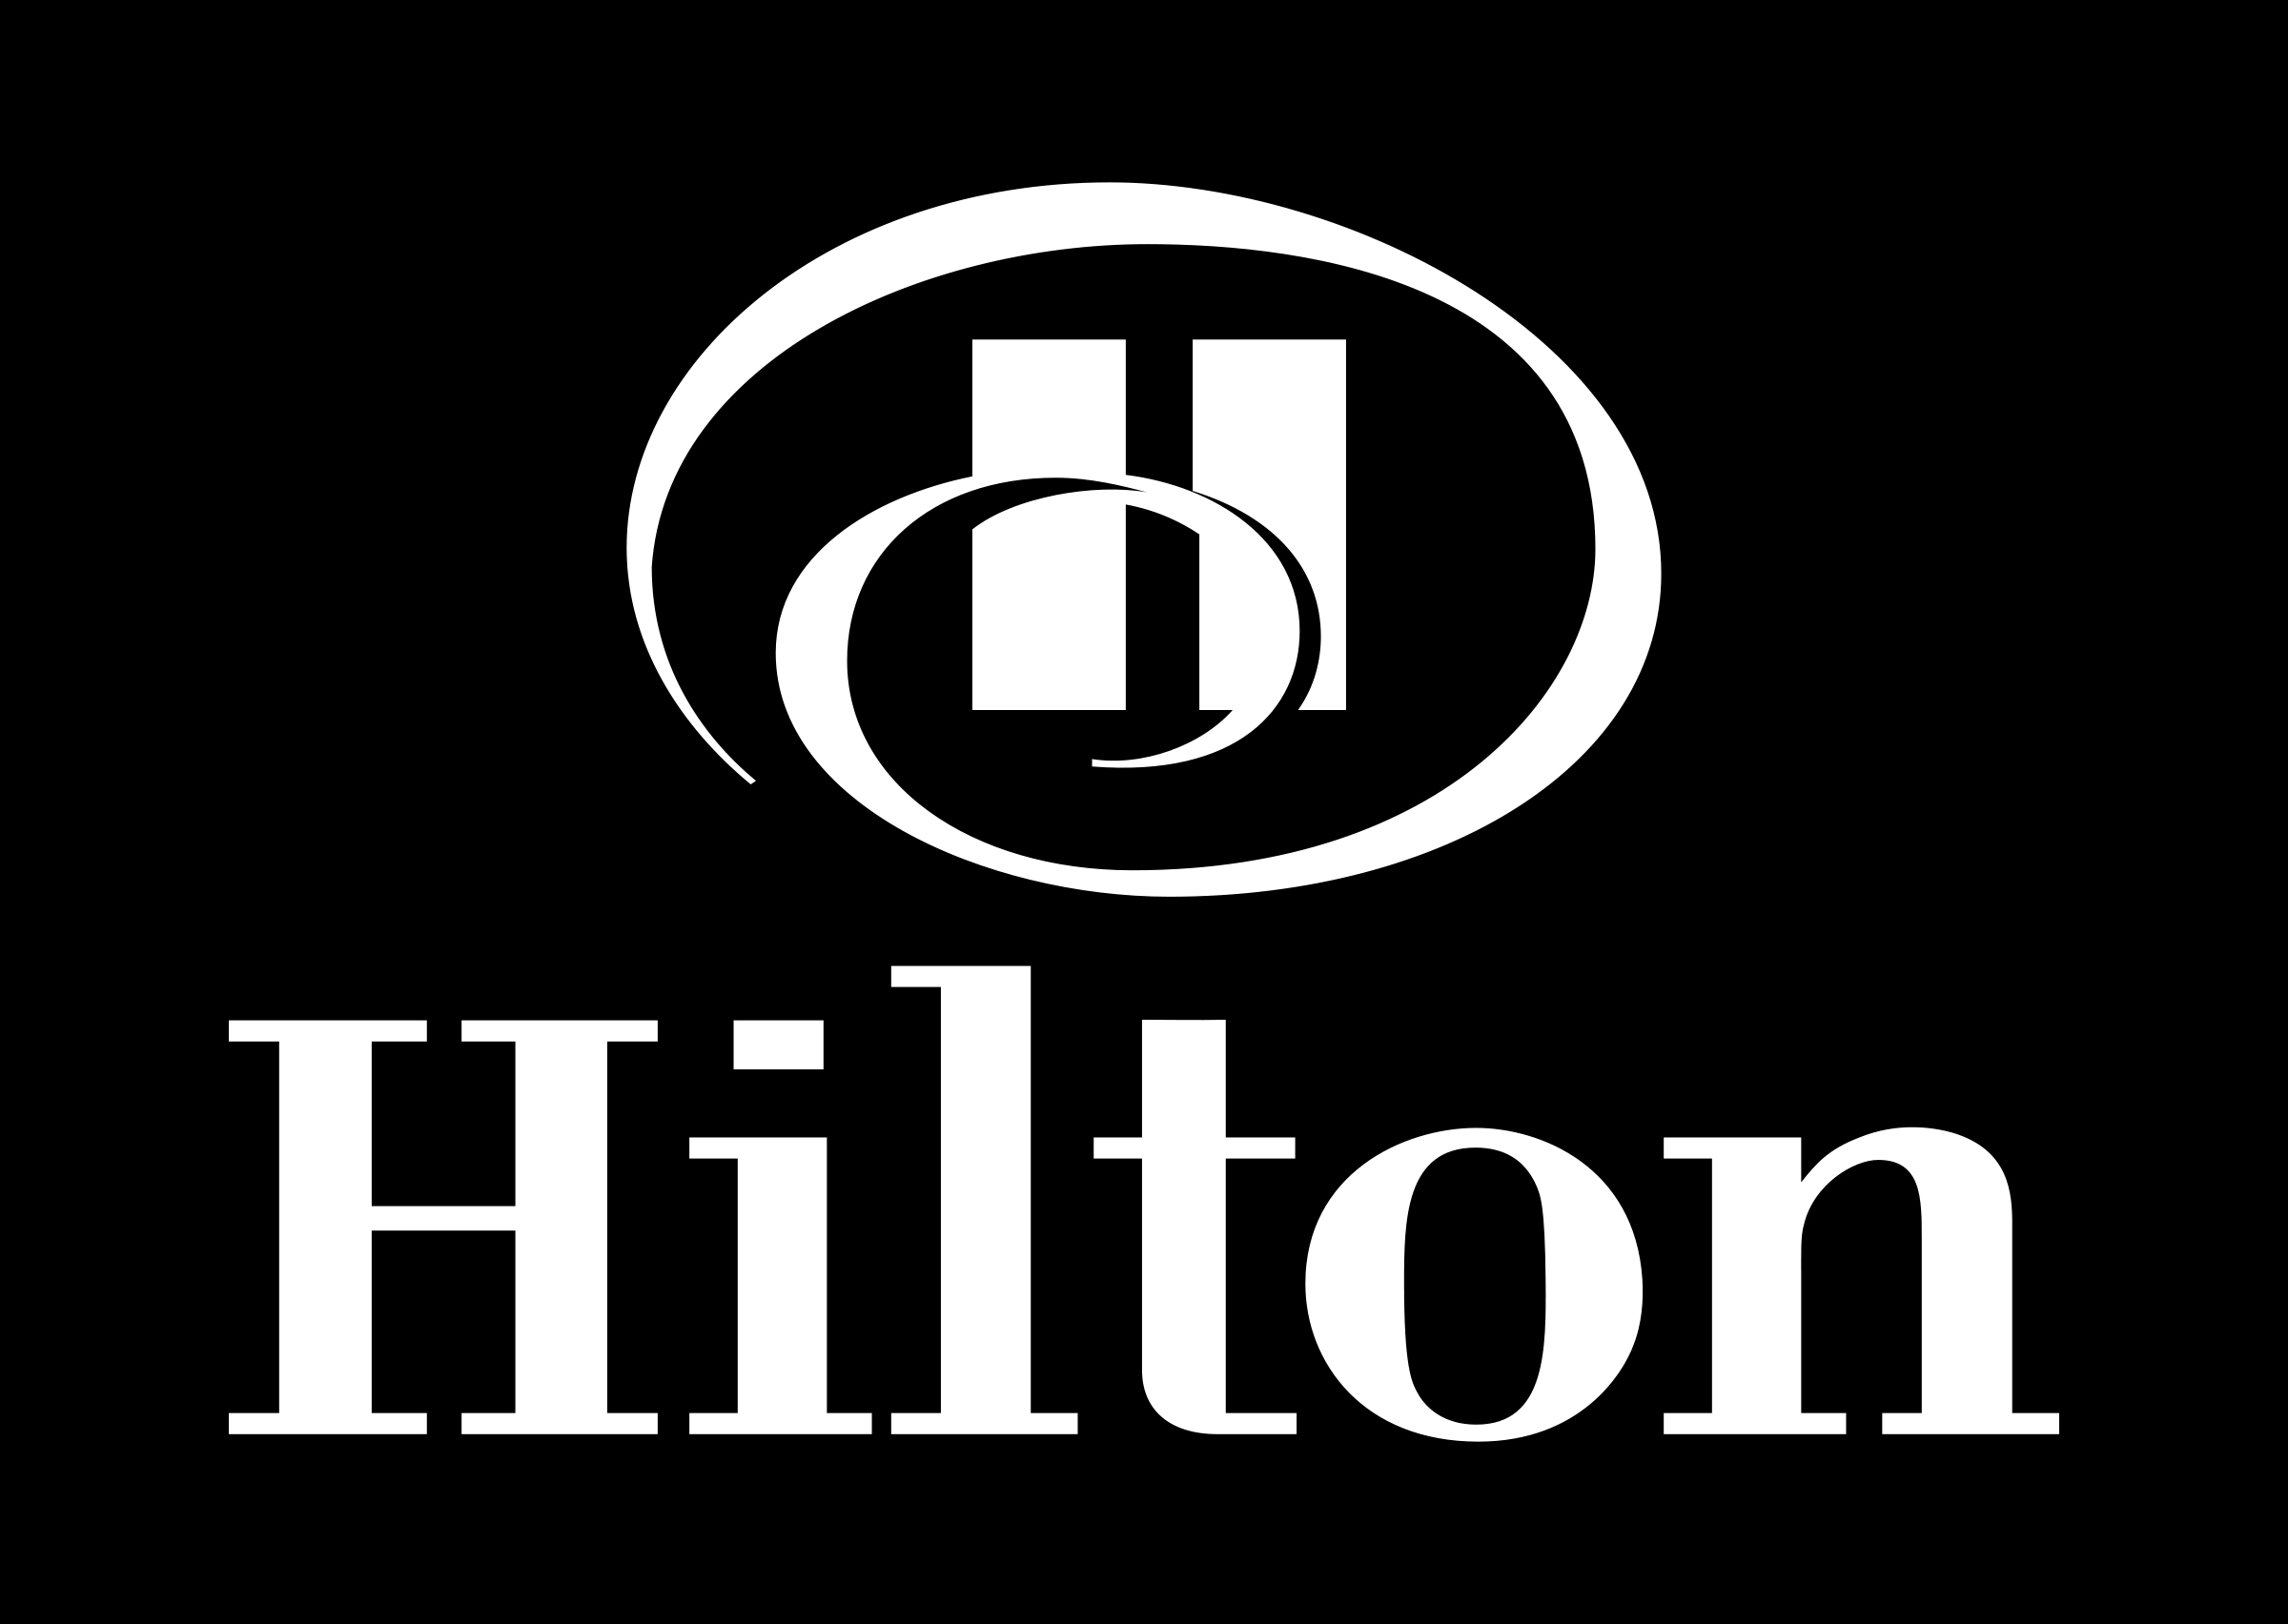 Hilton Logo, Hilton Symbol Meaning, History and Evolution